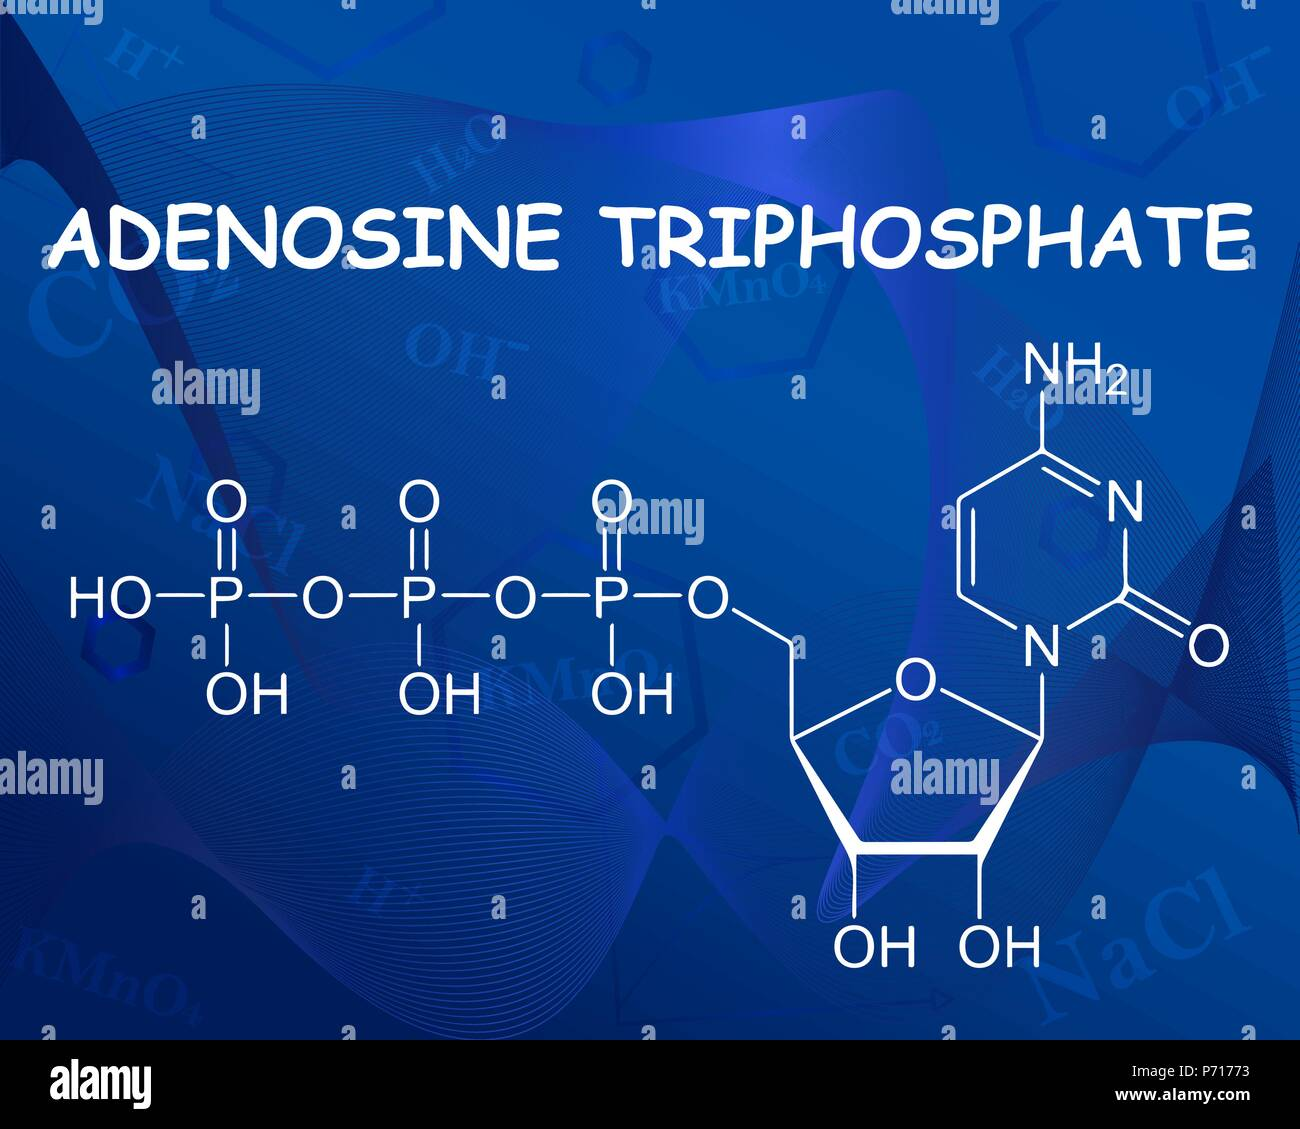 Adenosine triphosphate chemical formula. Vector illustration. Formula beautiful blue background. - Stock Vector